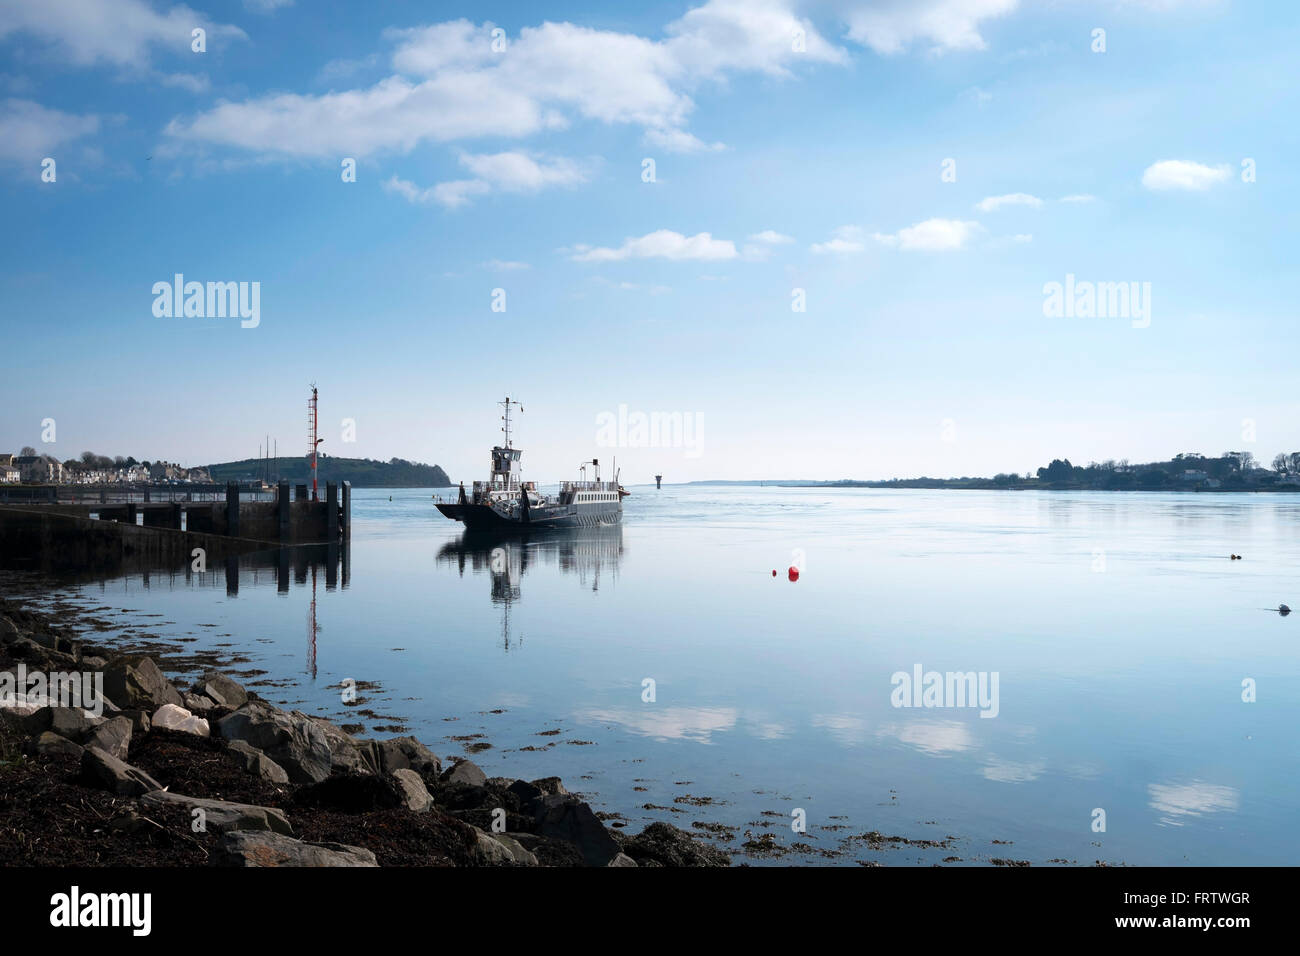 Strangford Ferry, Portaferry, Co. Down, Northern Ireland - Stock Image